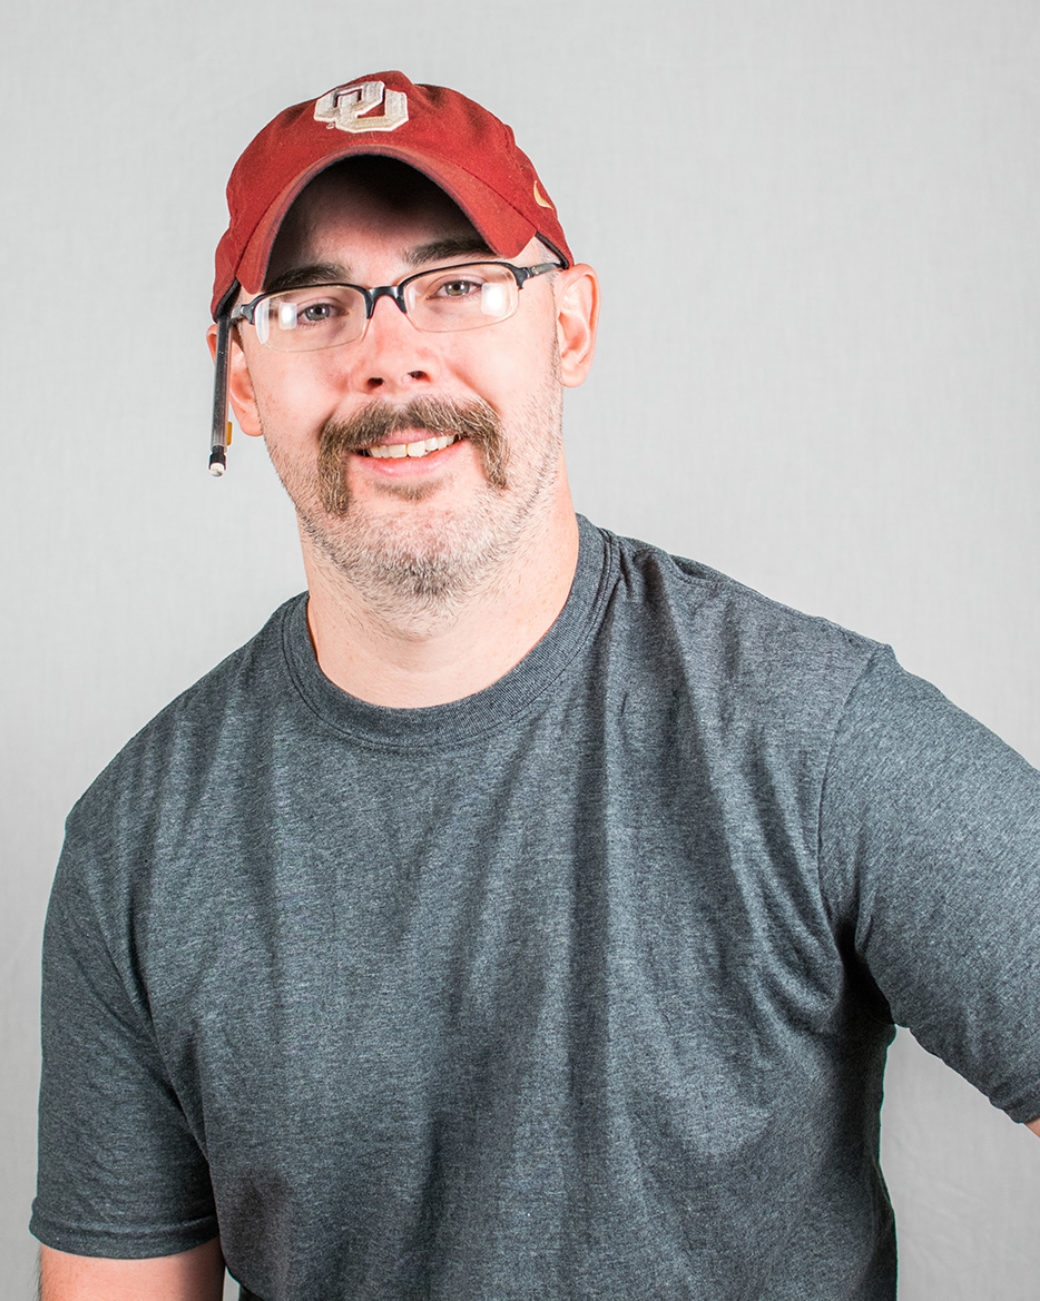 A figure in glasses and a University of Oklahoma ballcap smiles at the camera